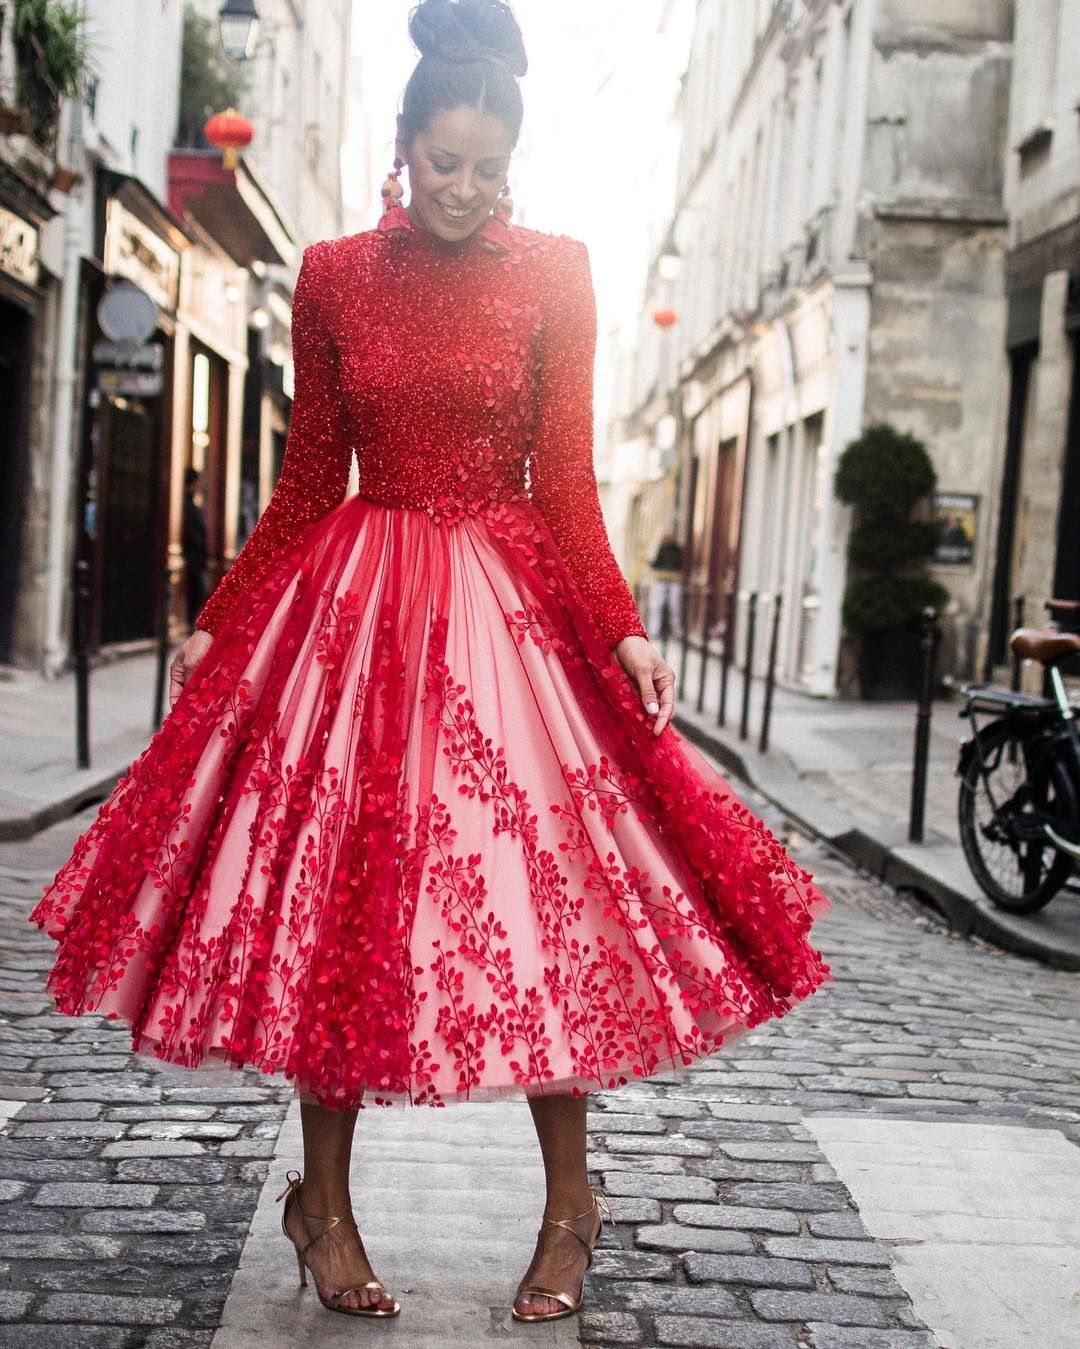 Pin by MH on Dress up | Fashion, Dress up, Dresses